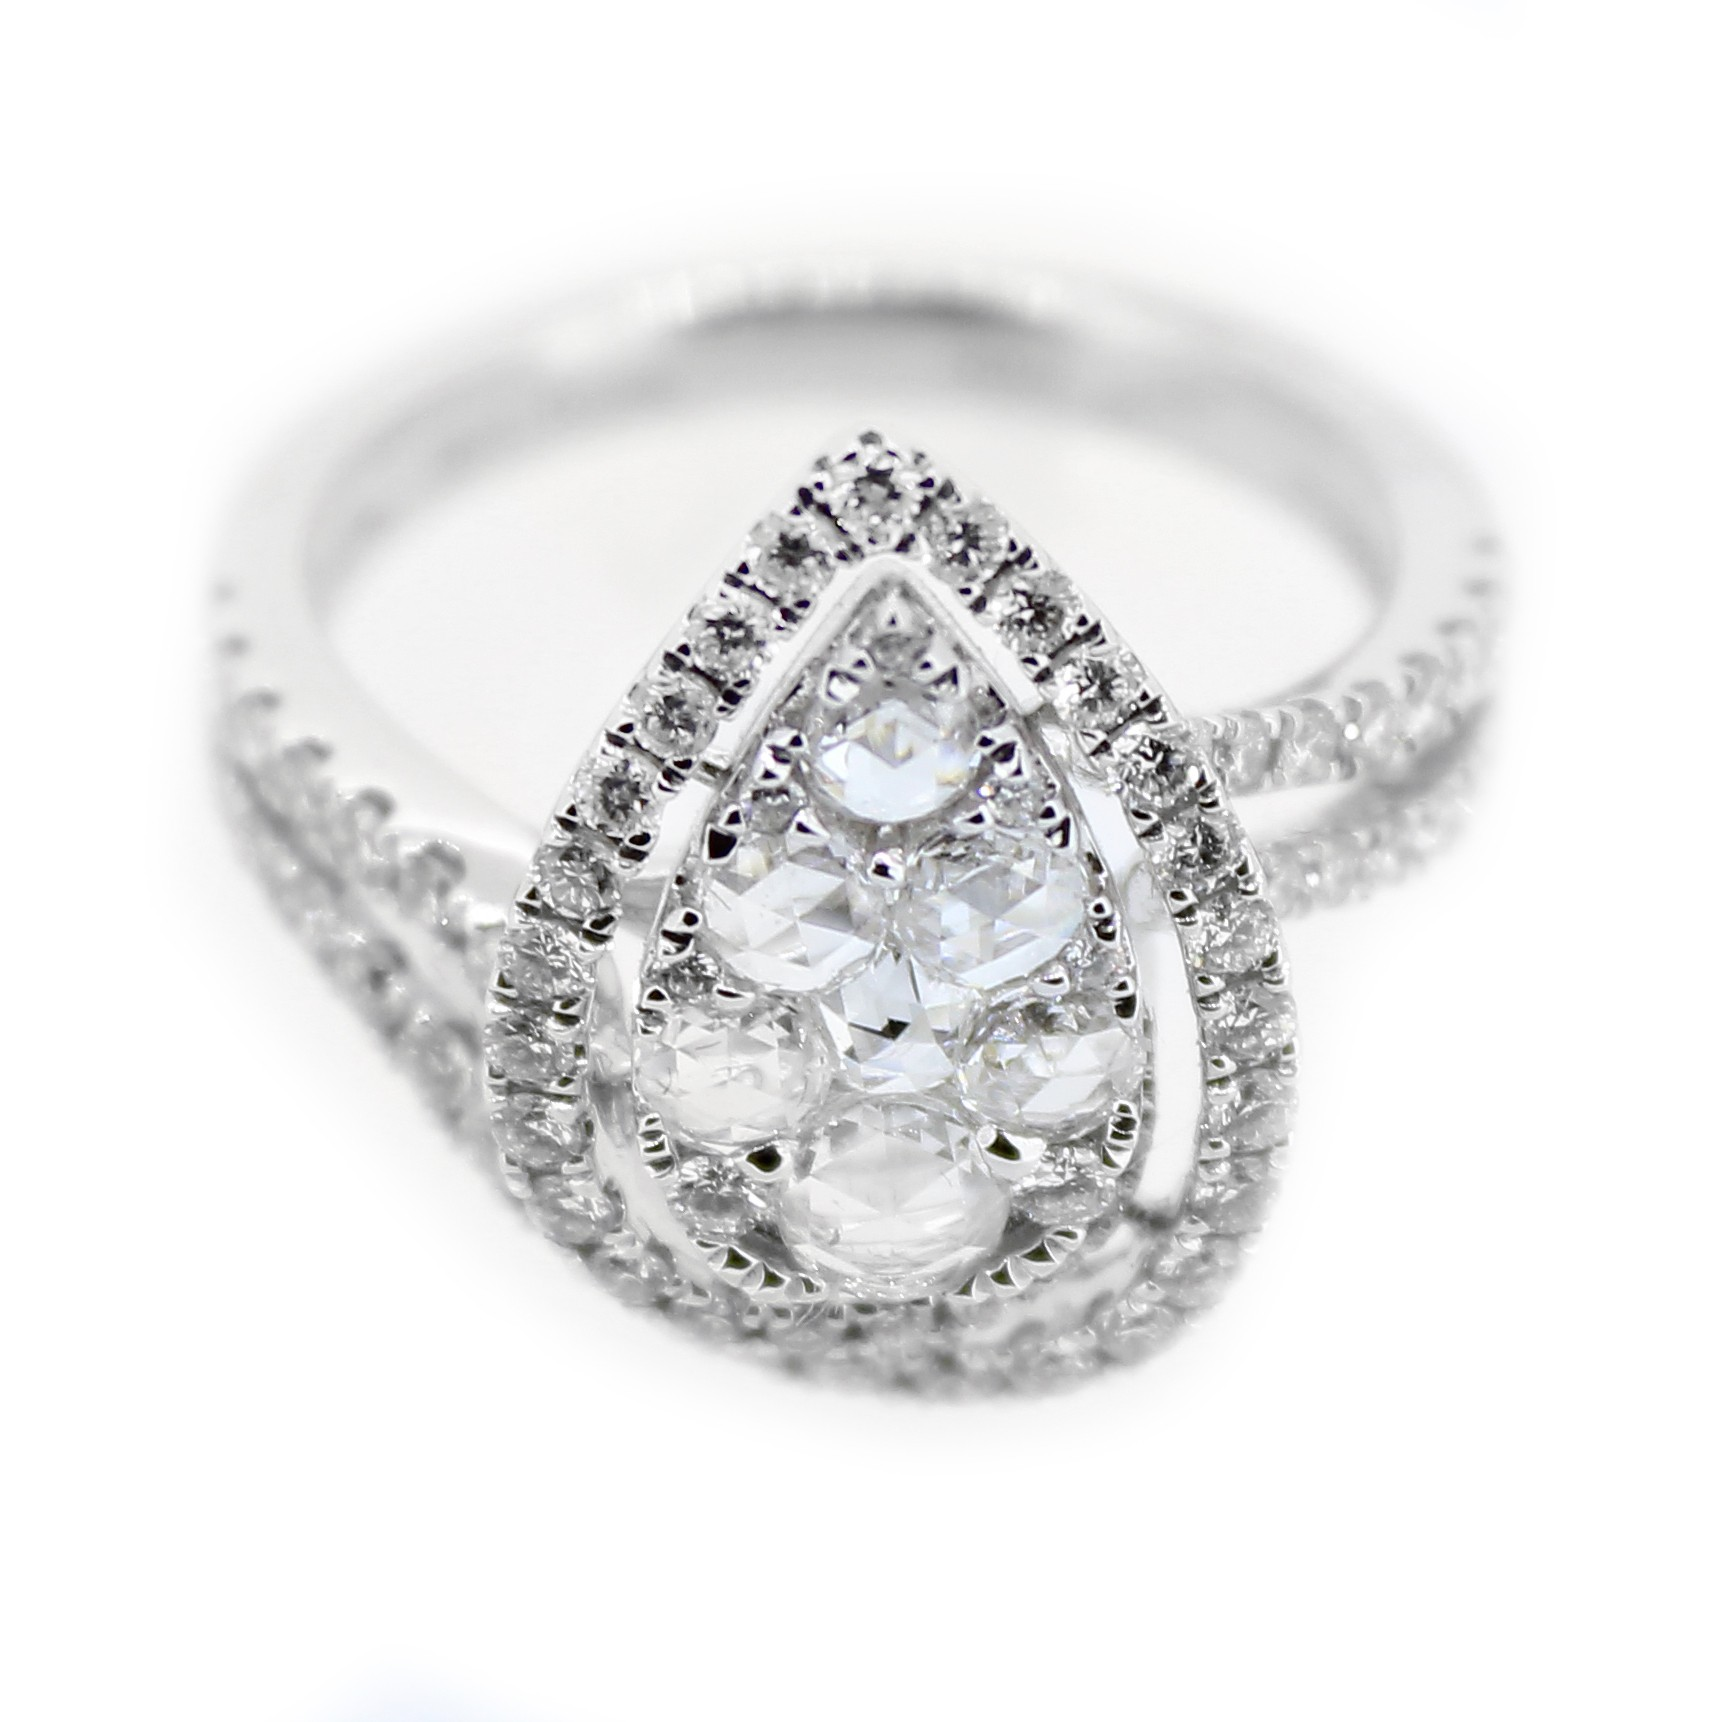 Pear shape diamond ring G VS2